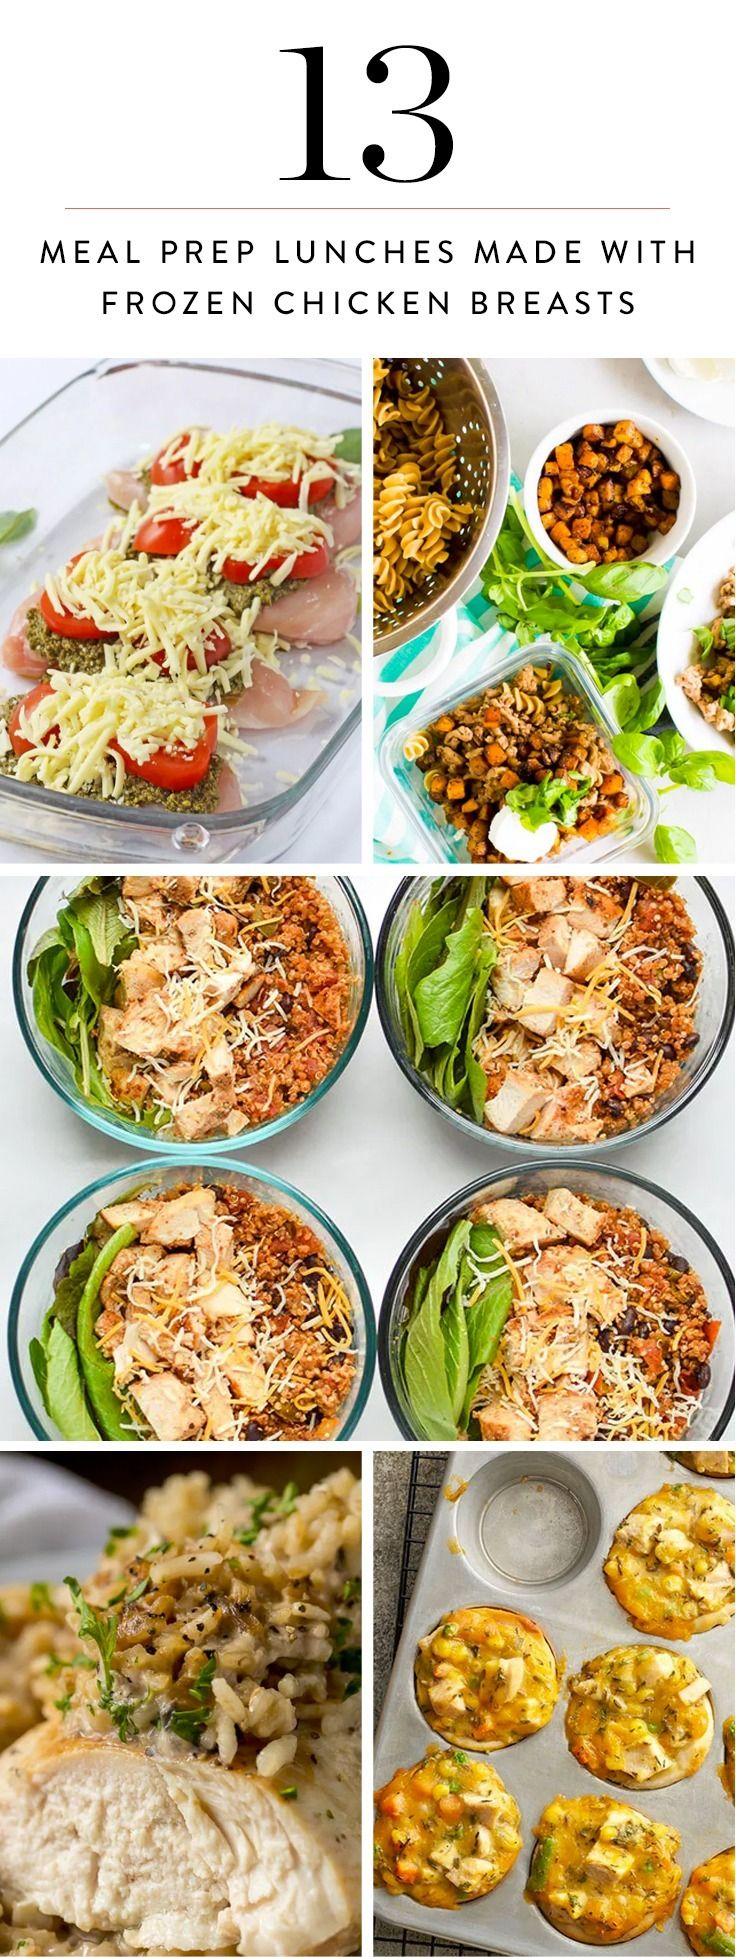 Here are 13 delicious meal prep lunches you can make with frozen chicken breasts. Make it once, eat it all week.